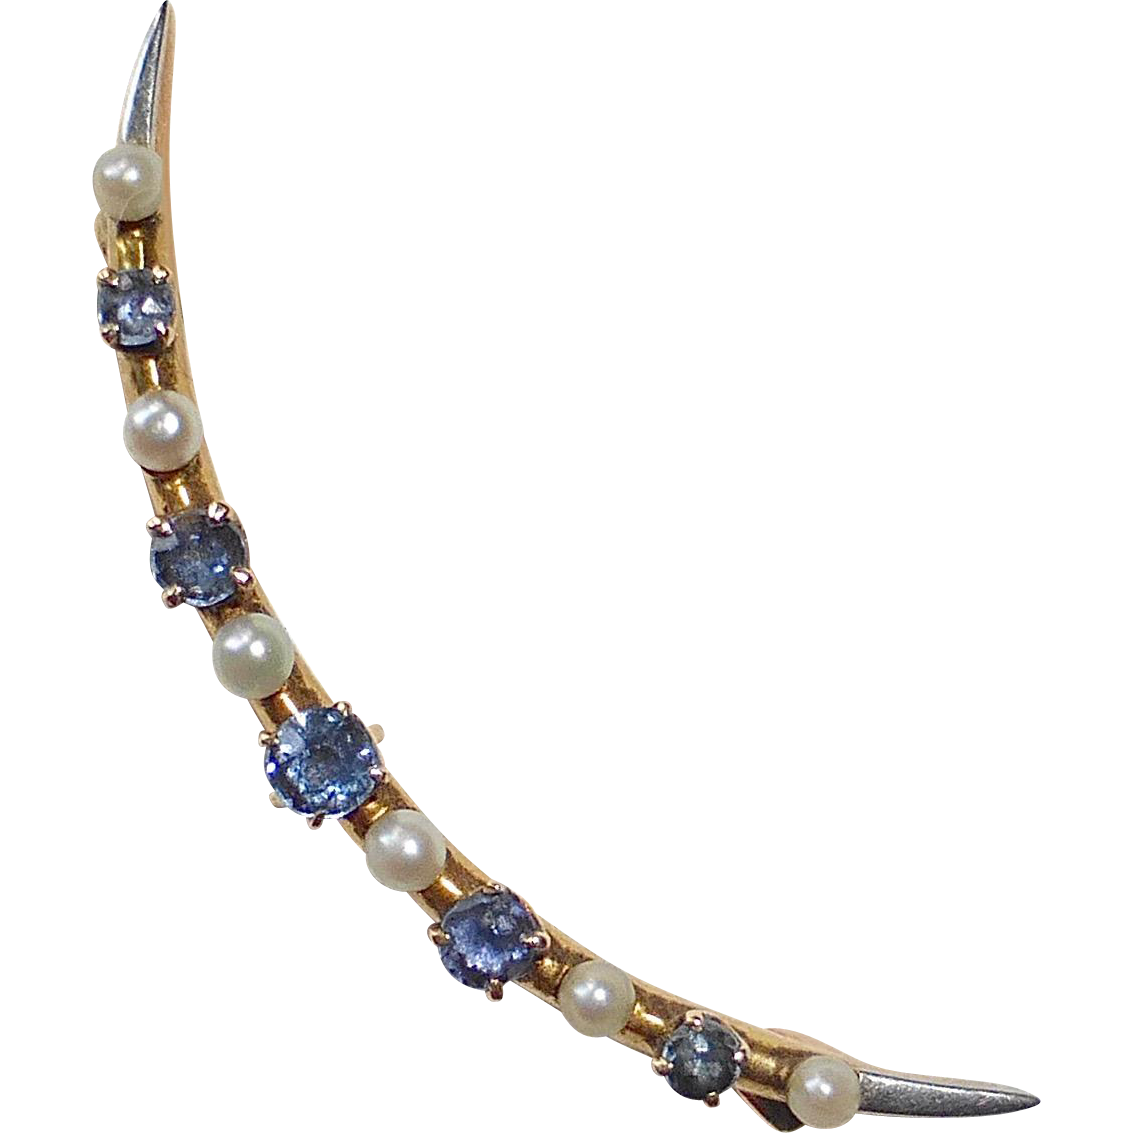 Edwardian 14k Crescent Moon Pin Sapphires & Seed Pearls